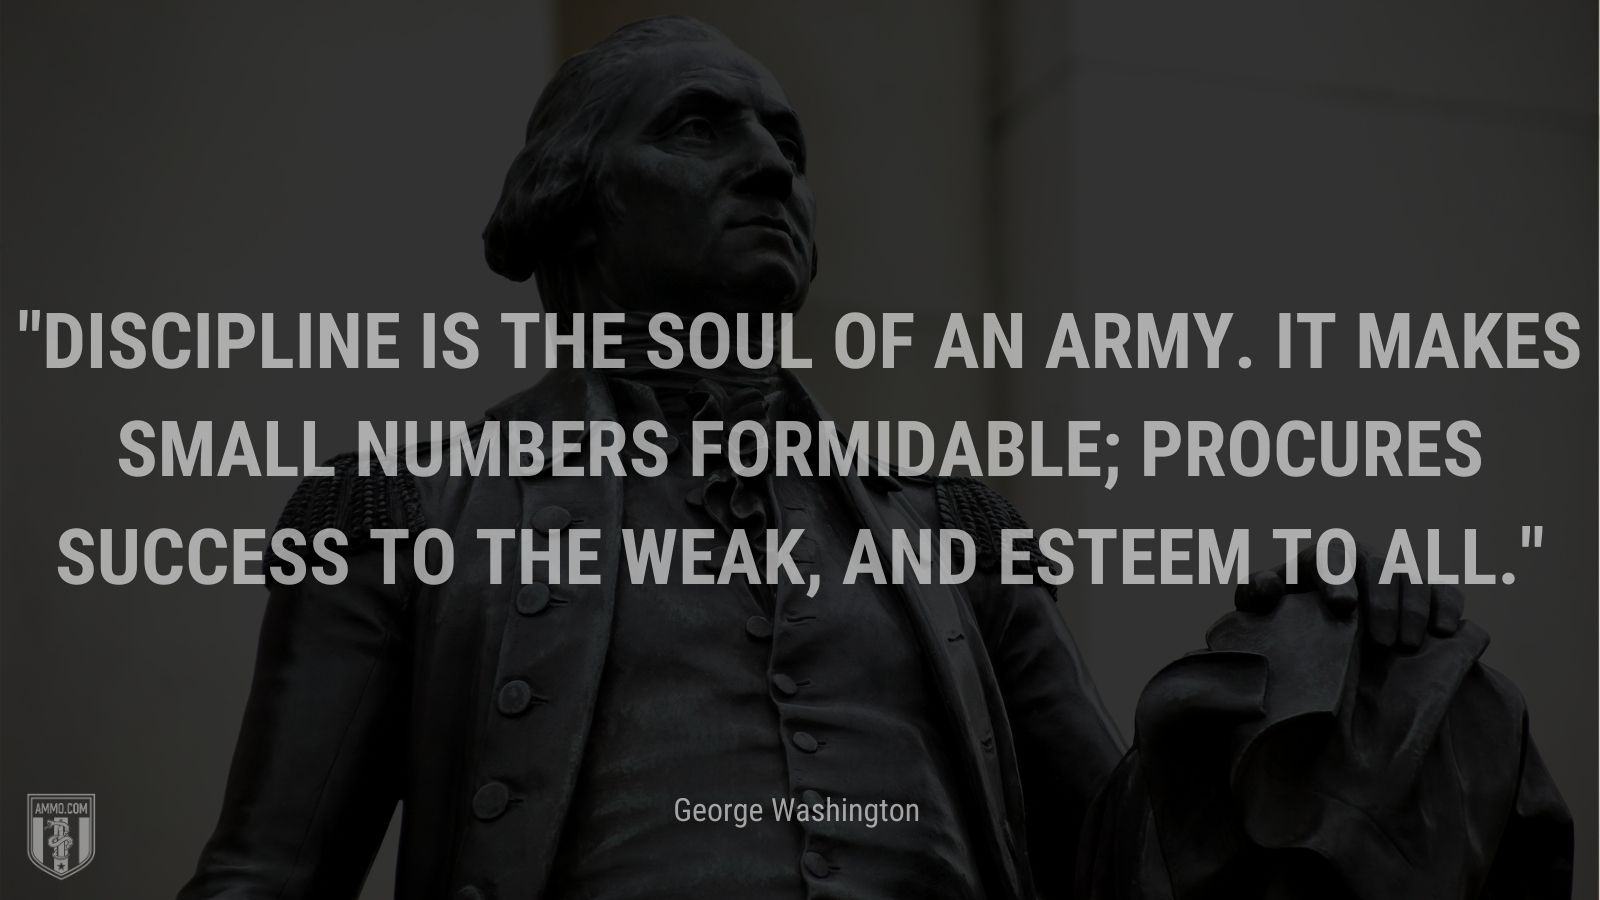 """""""Discipline is the soul of an army. It makes small numbers formidable; procures success to the weak, and esteem to all."""" - George Washington"""